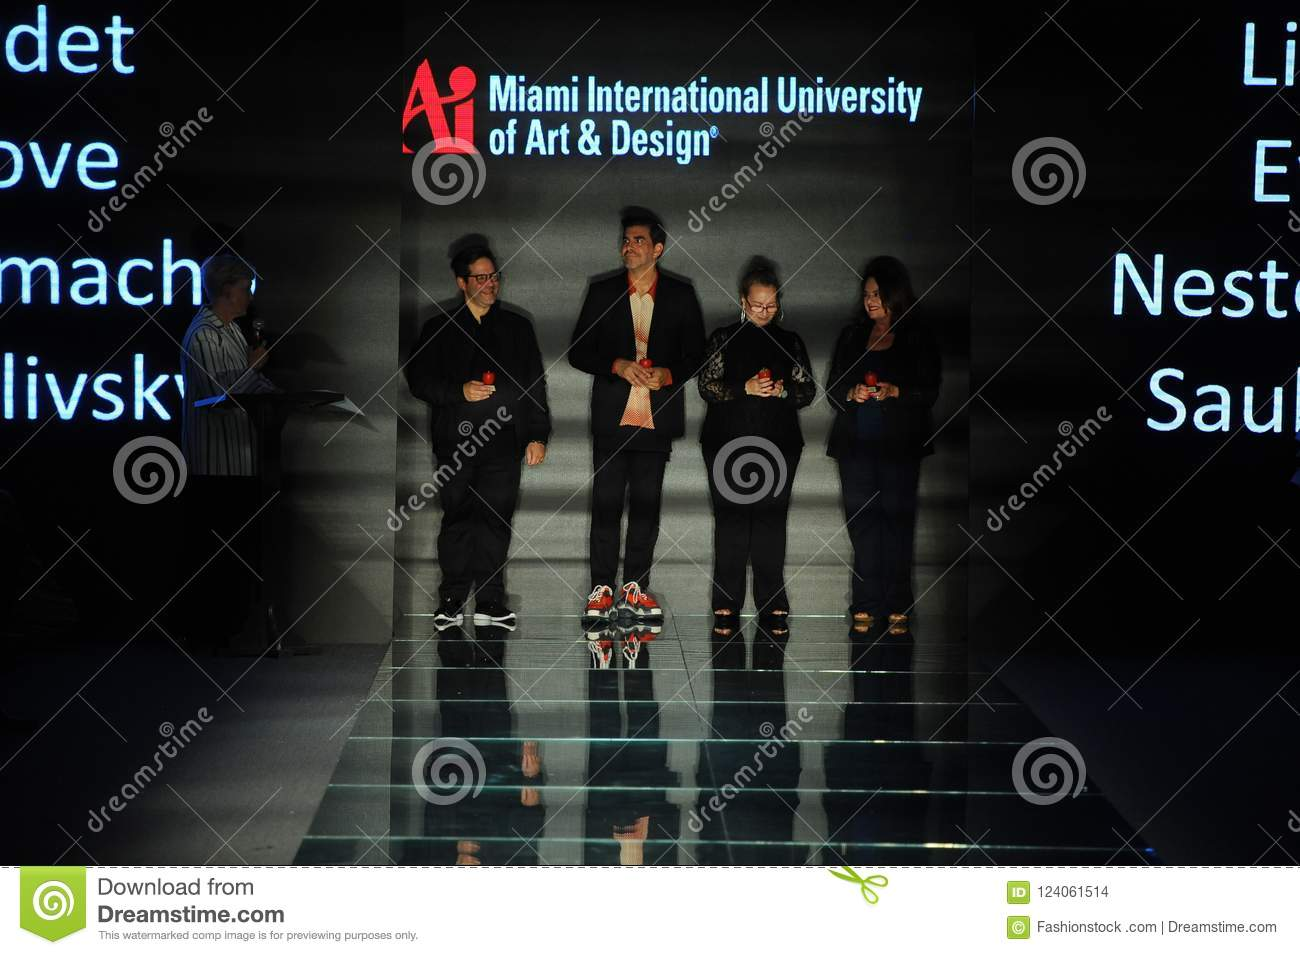 General Atmosphere On The Runway During The Fashion Show Presented By Students Of Miami International University Of Art And Design Editorial Stock Image Image Of July Bikini 124061514